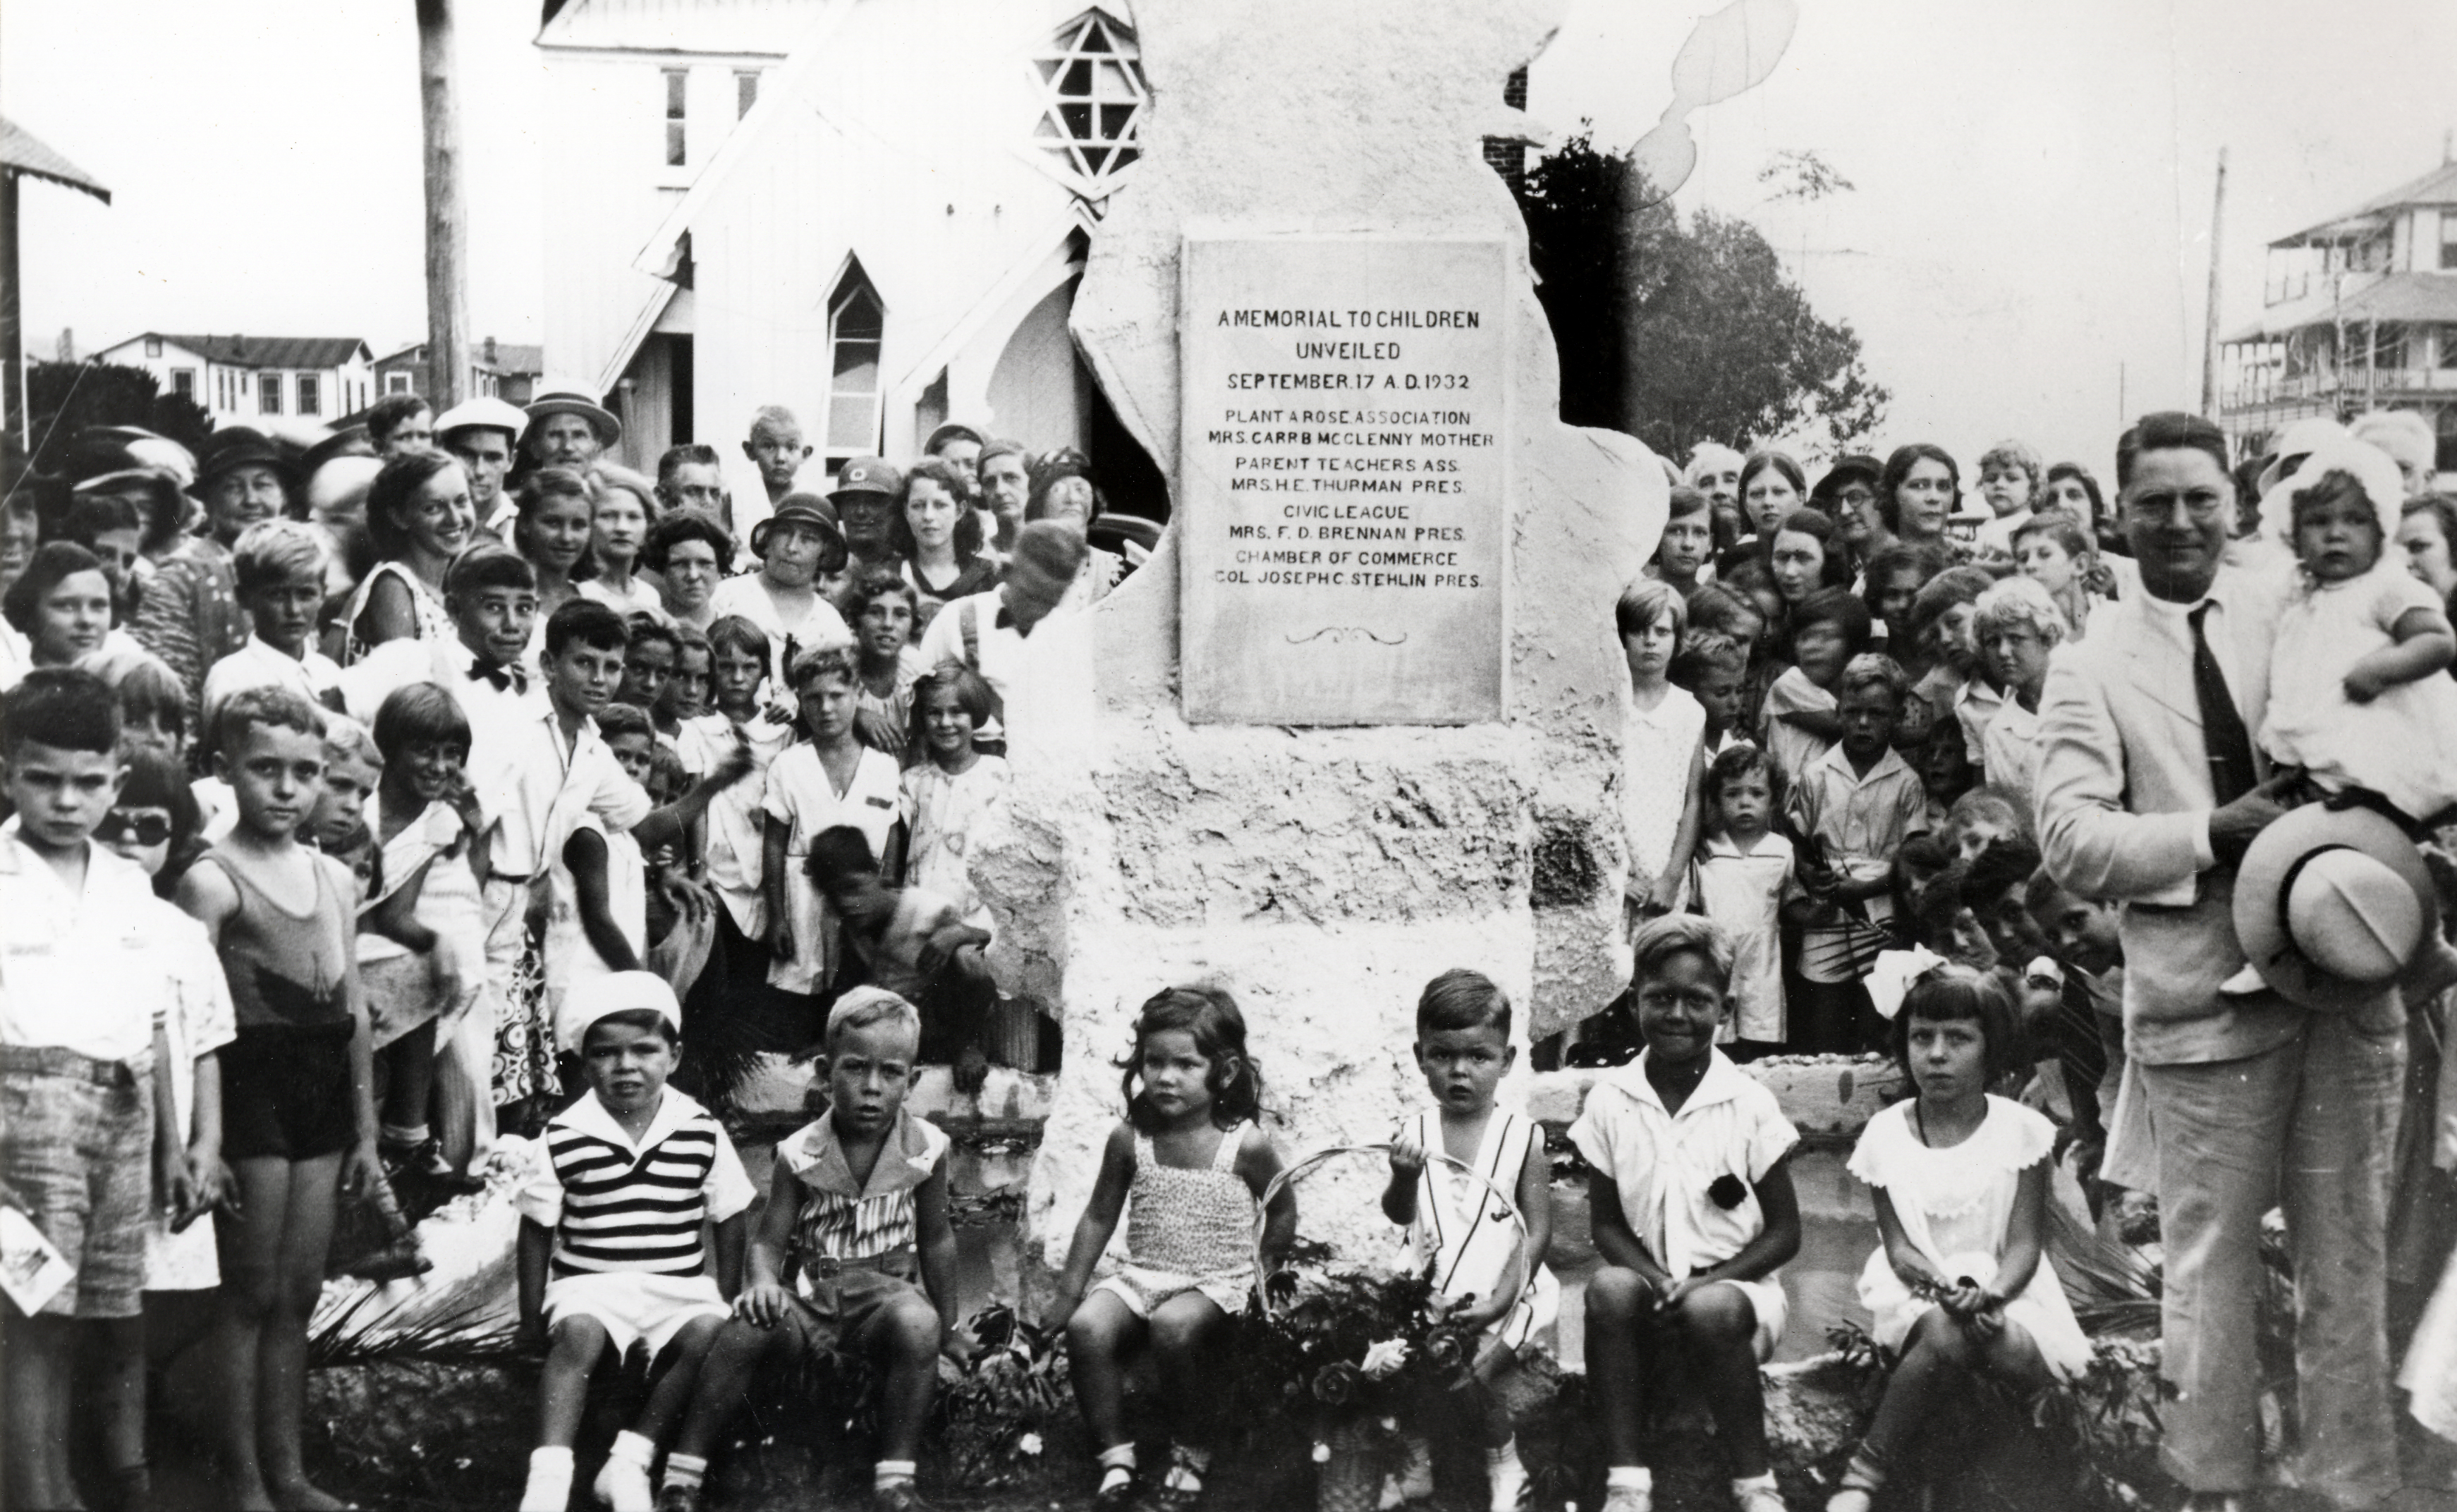 Dedication on September 17, 1932 in its original location. Colonel Stehlin is holding a baby in the foreground.